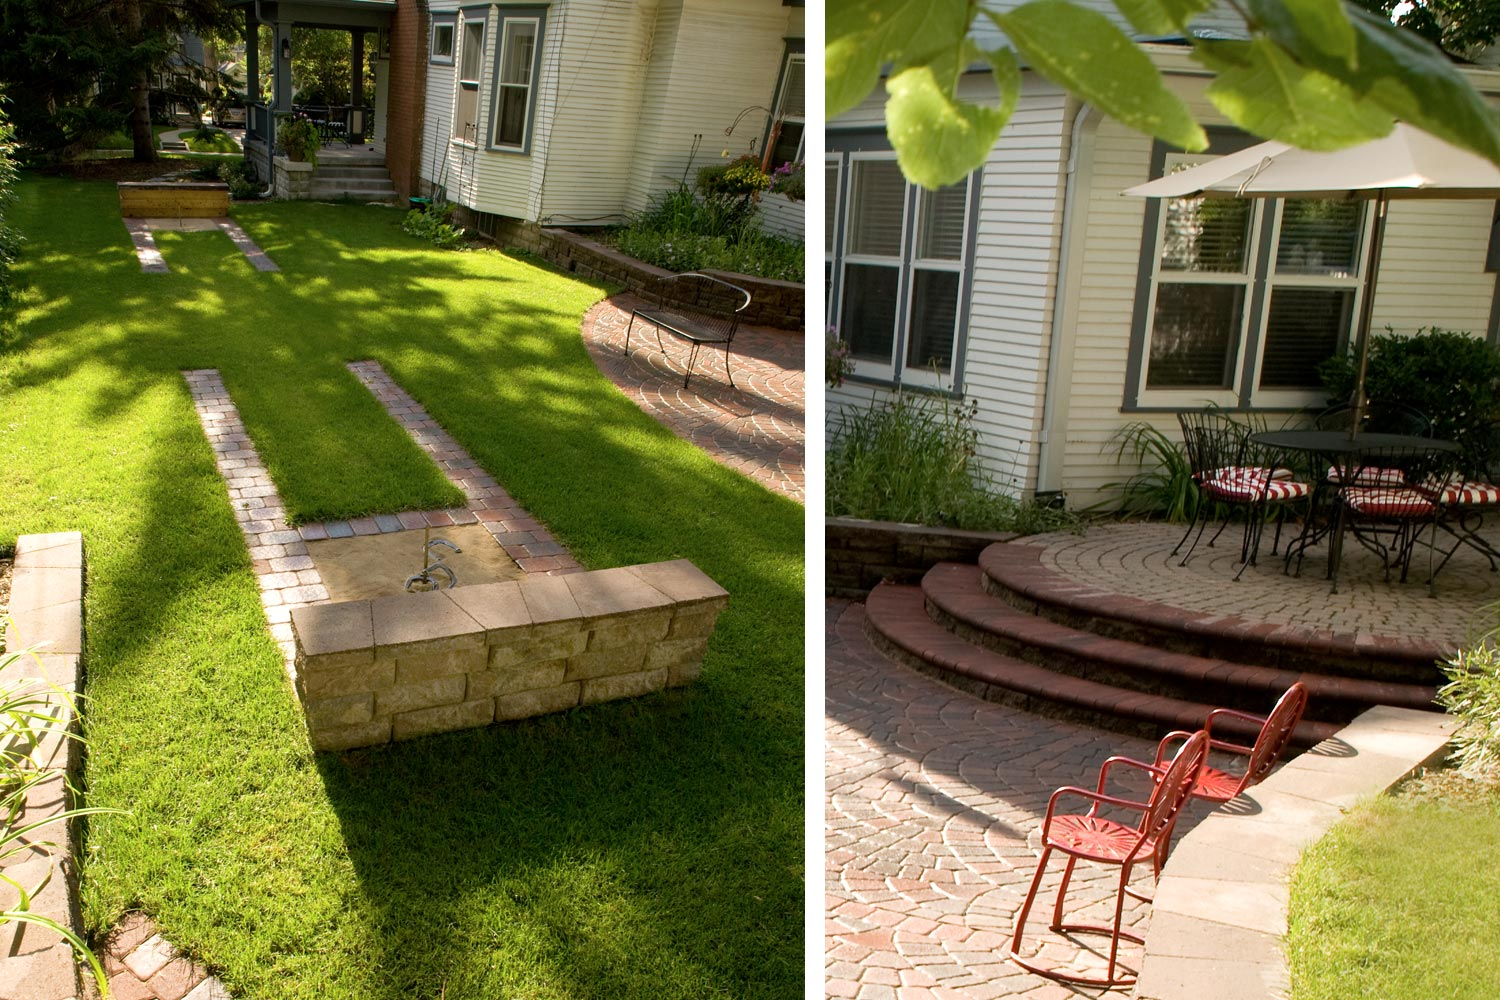 Minneapolis Landscaping Sideyard Horseshoes and Patio